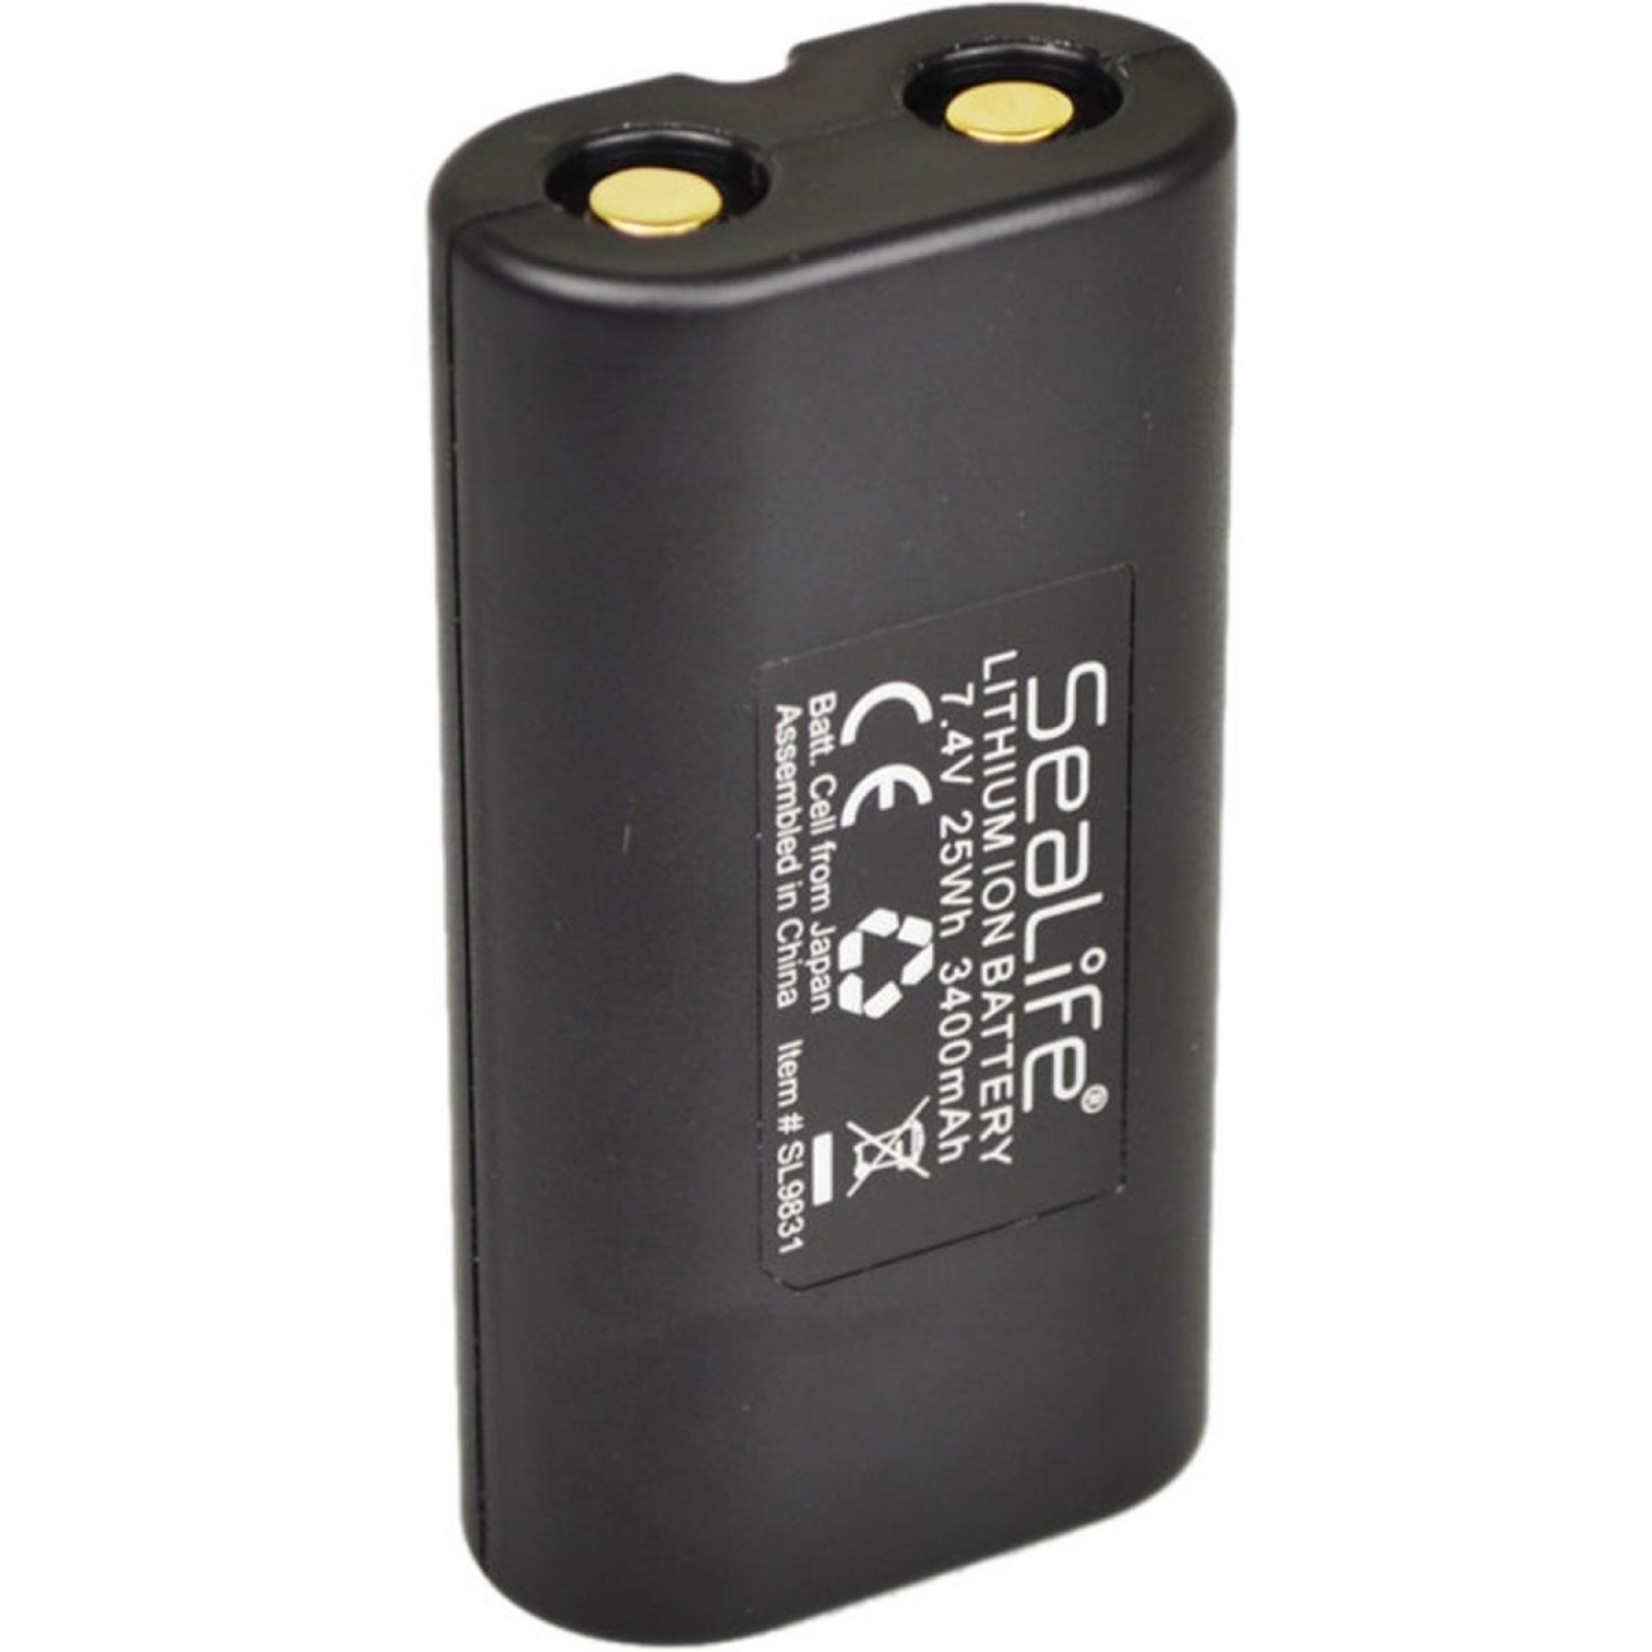 Sealife Battery Li-Ion for all Sea Dragon Lights (except not for SD4500/SD5000)